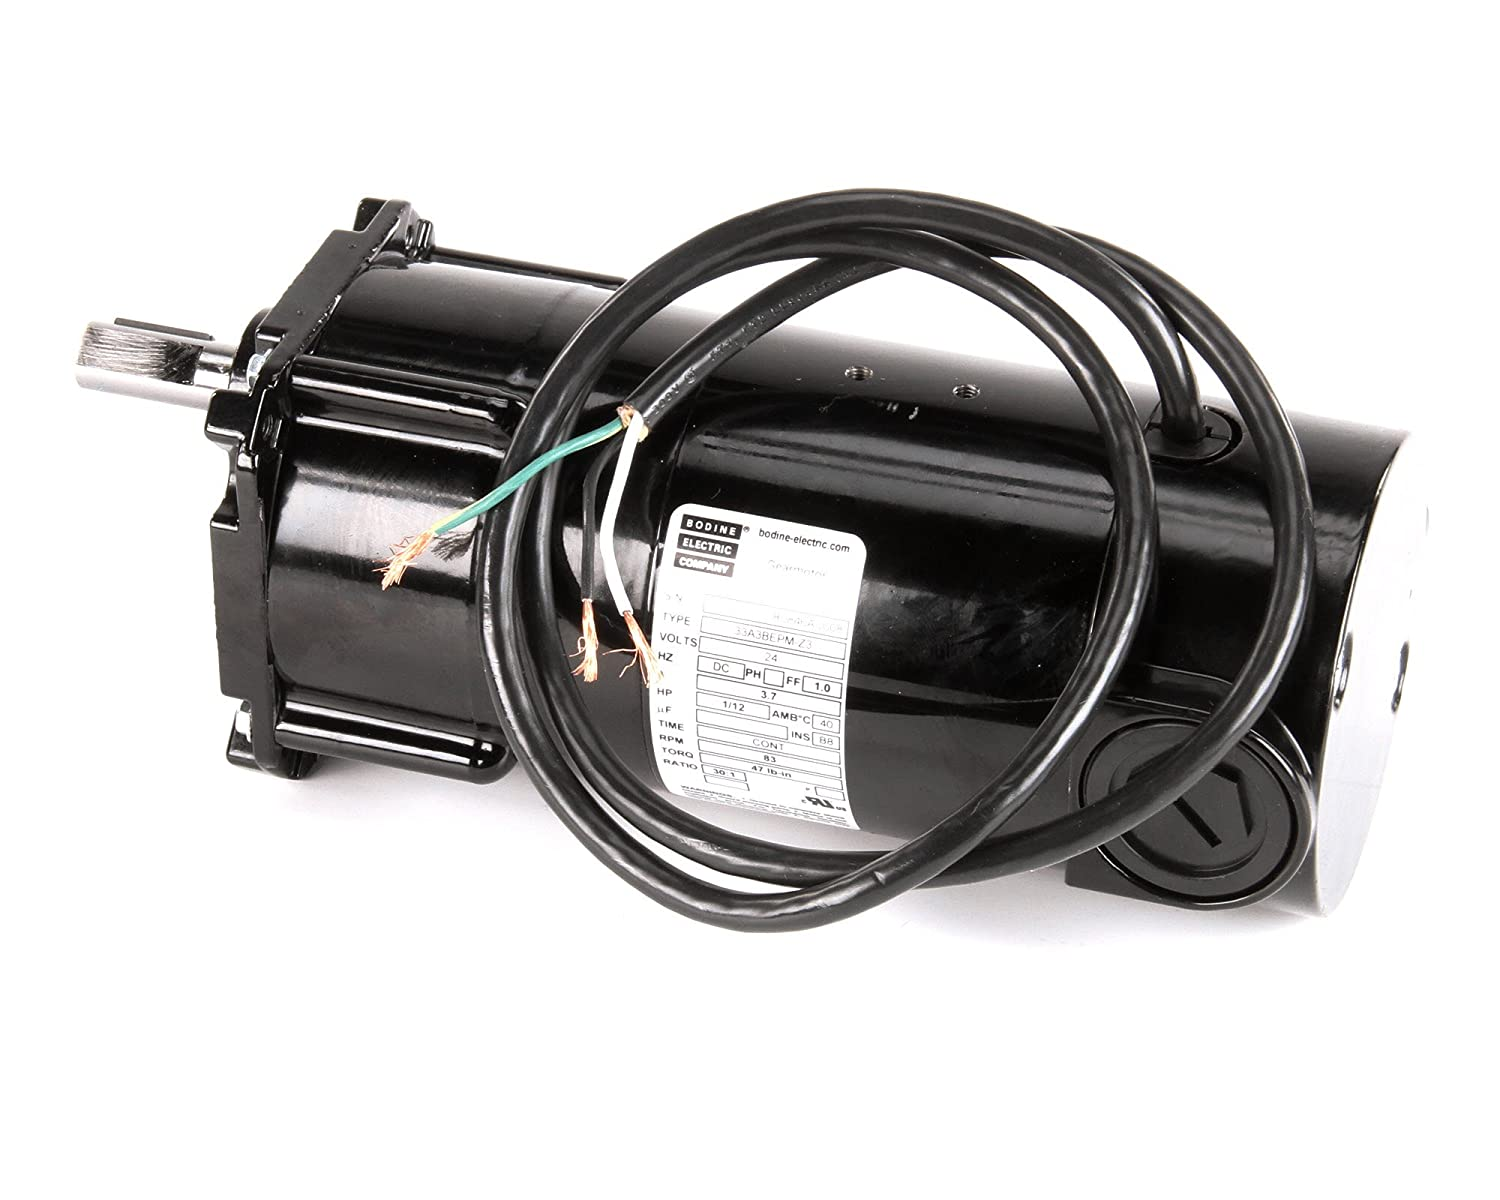 Cleveland Ke603896 Gear Motor Pt Tr Industrial Bodine Electric Brushes Replacement Repalcement Parts Scientific